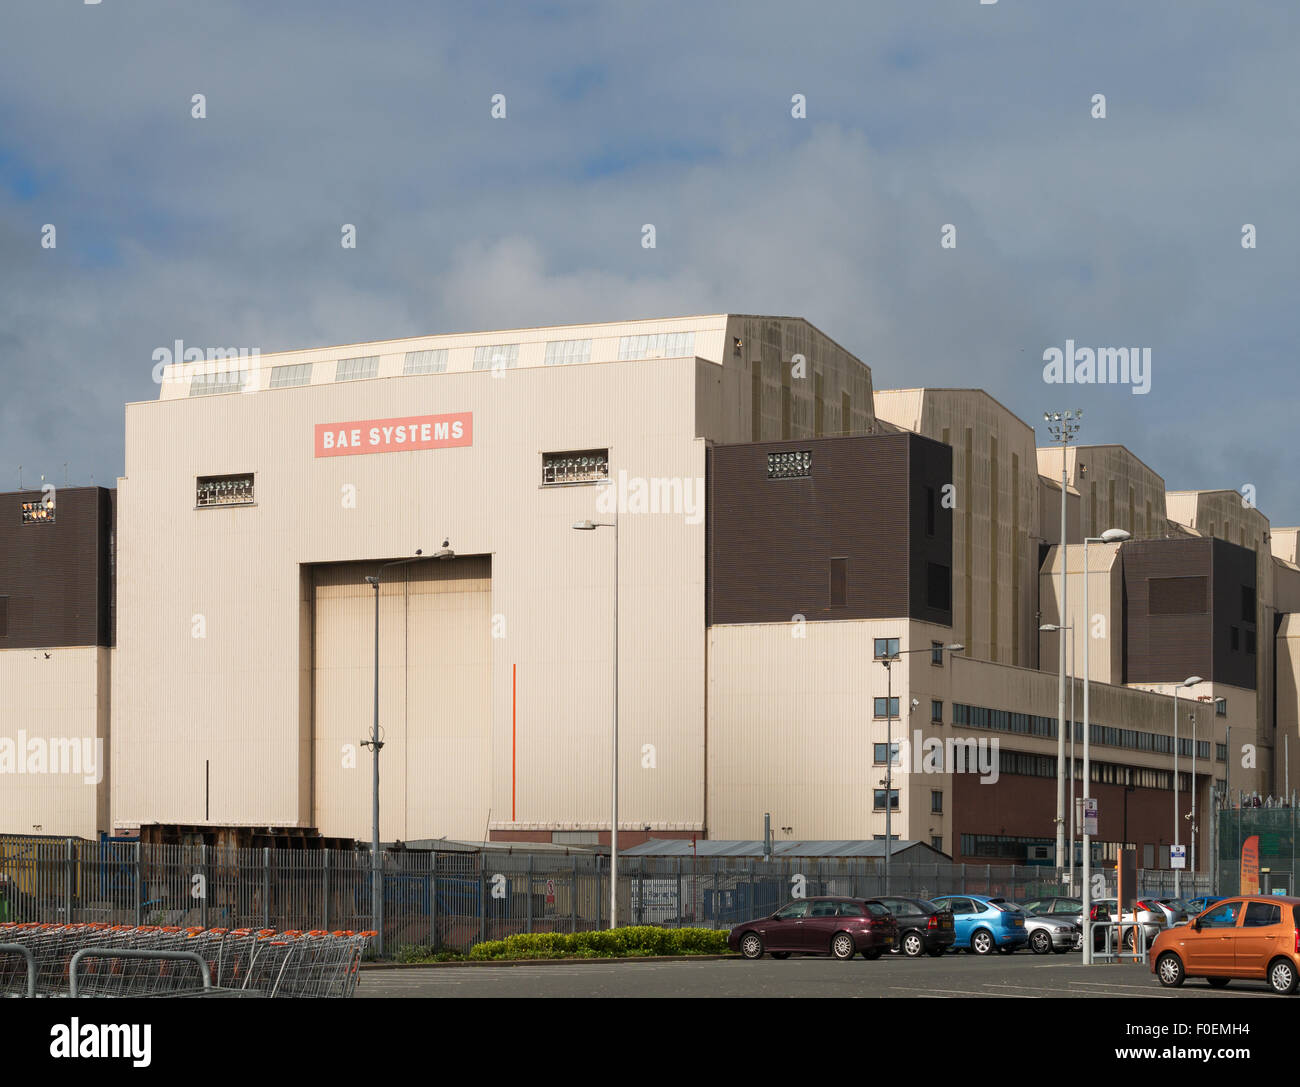 BAE Systems factory Barrow-in-Furness, Cumbria, England, UK - Stock Image